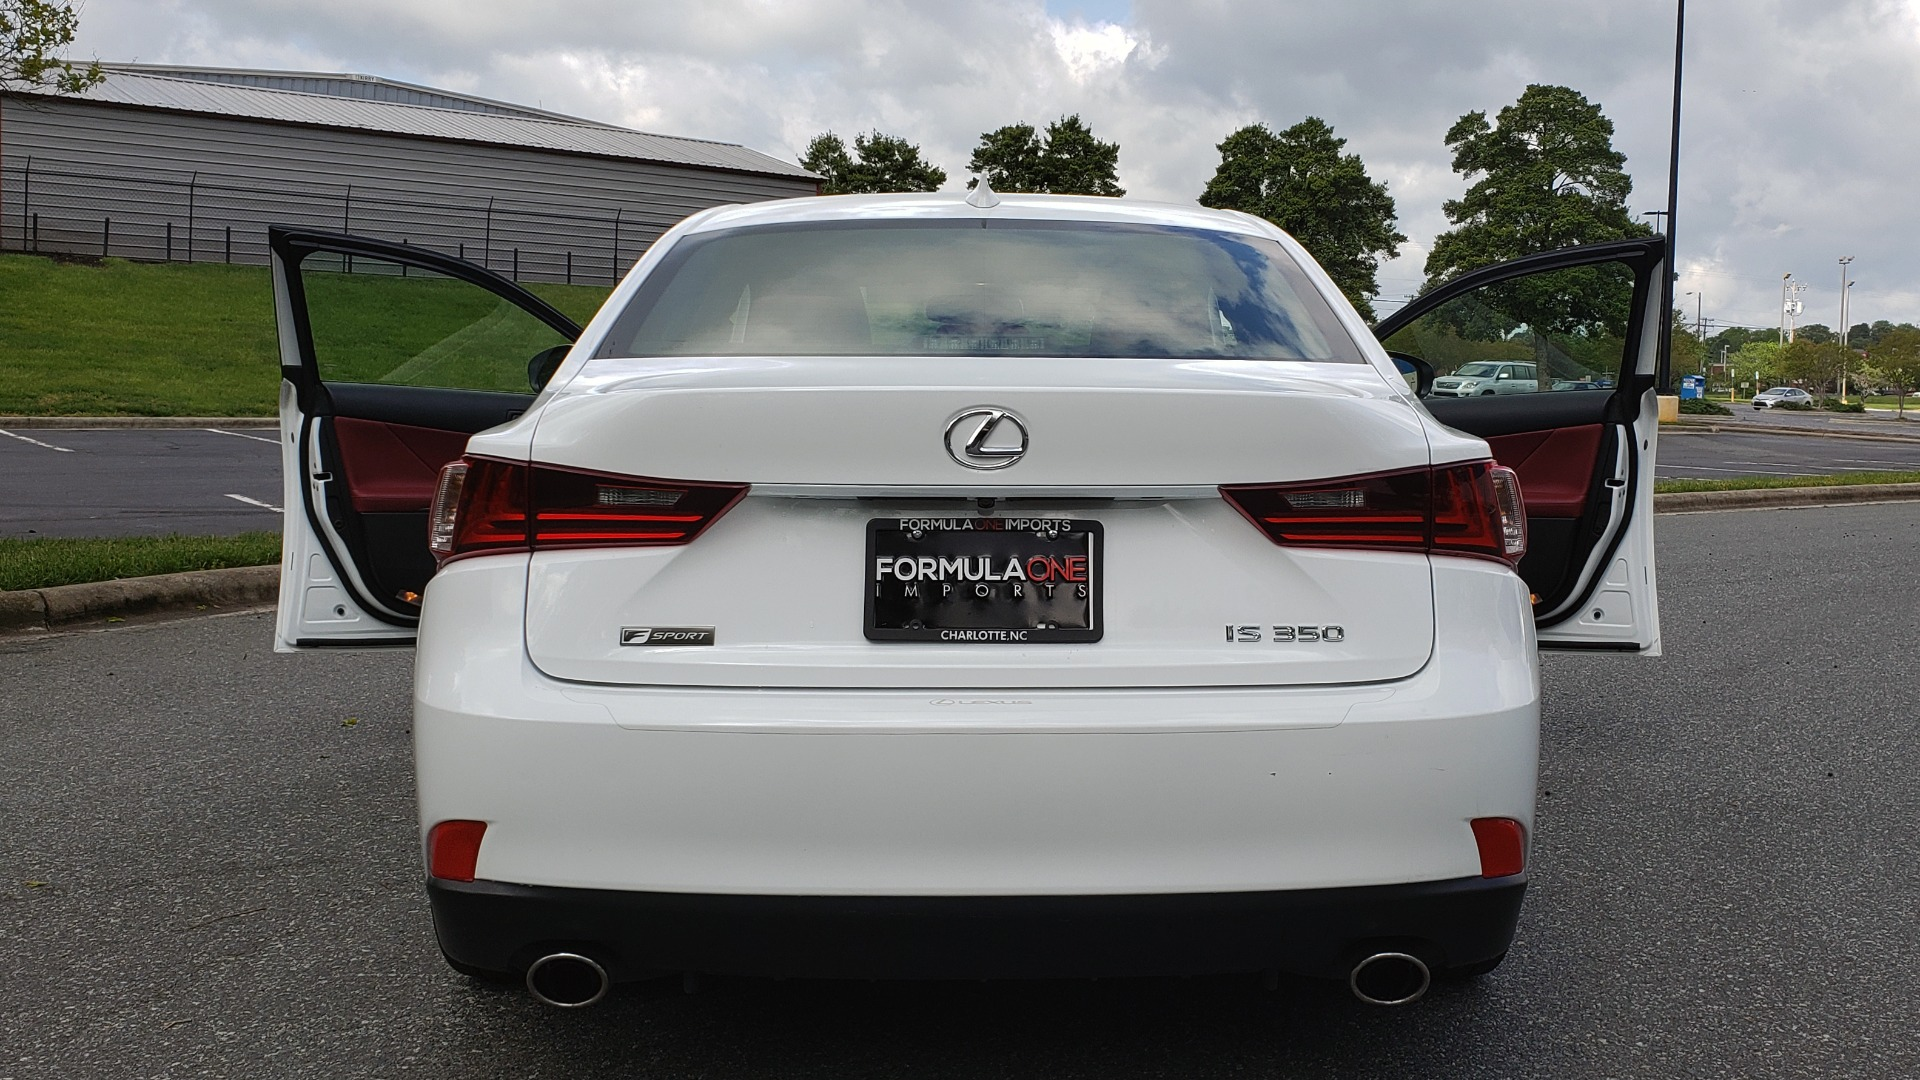 Used 2016 Lexus IS 350 F-SPORT / NAV / BSM / SUNROOF / REARVIEW / VENT SEATS for sale Sold at Formula Imports in Charlotte NC 28227 13